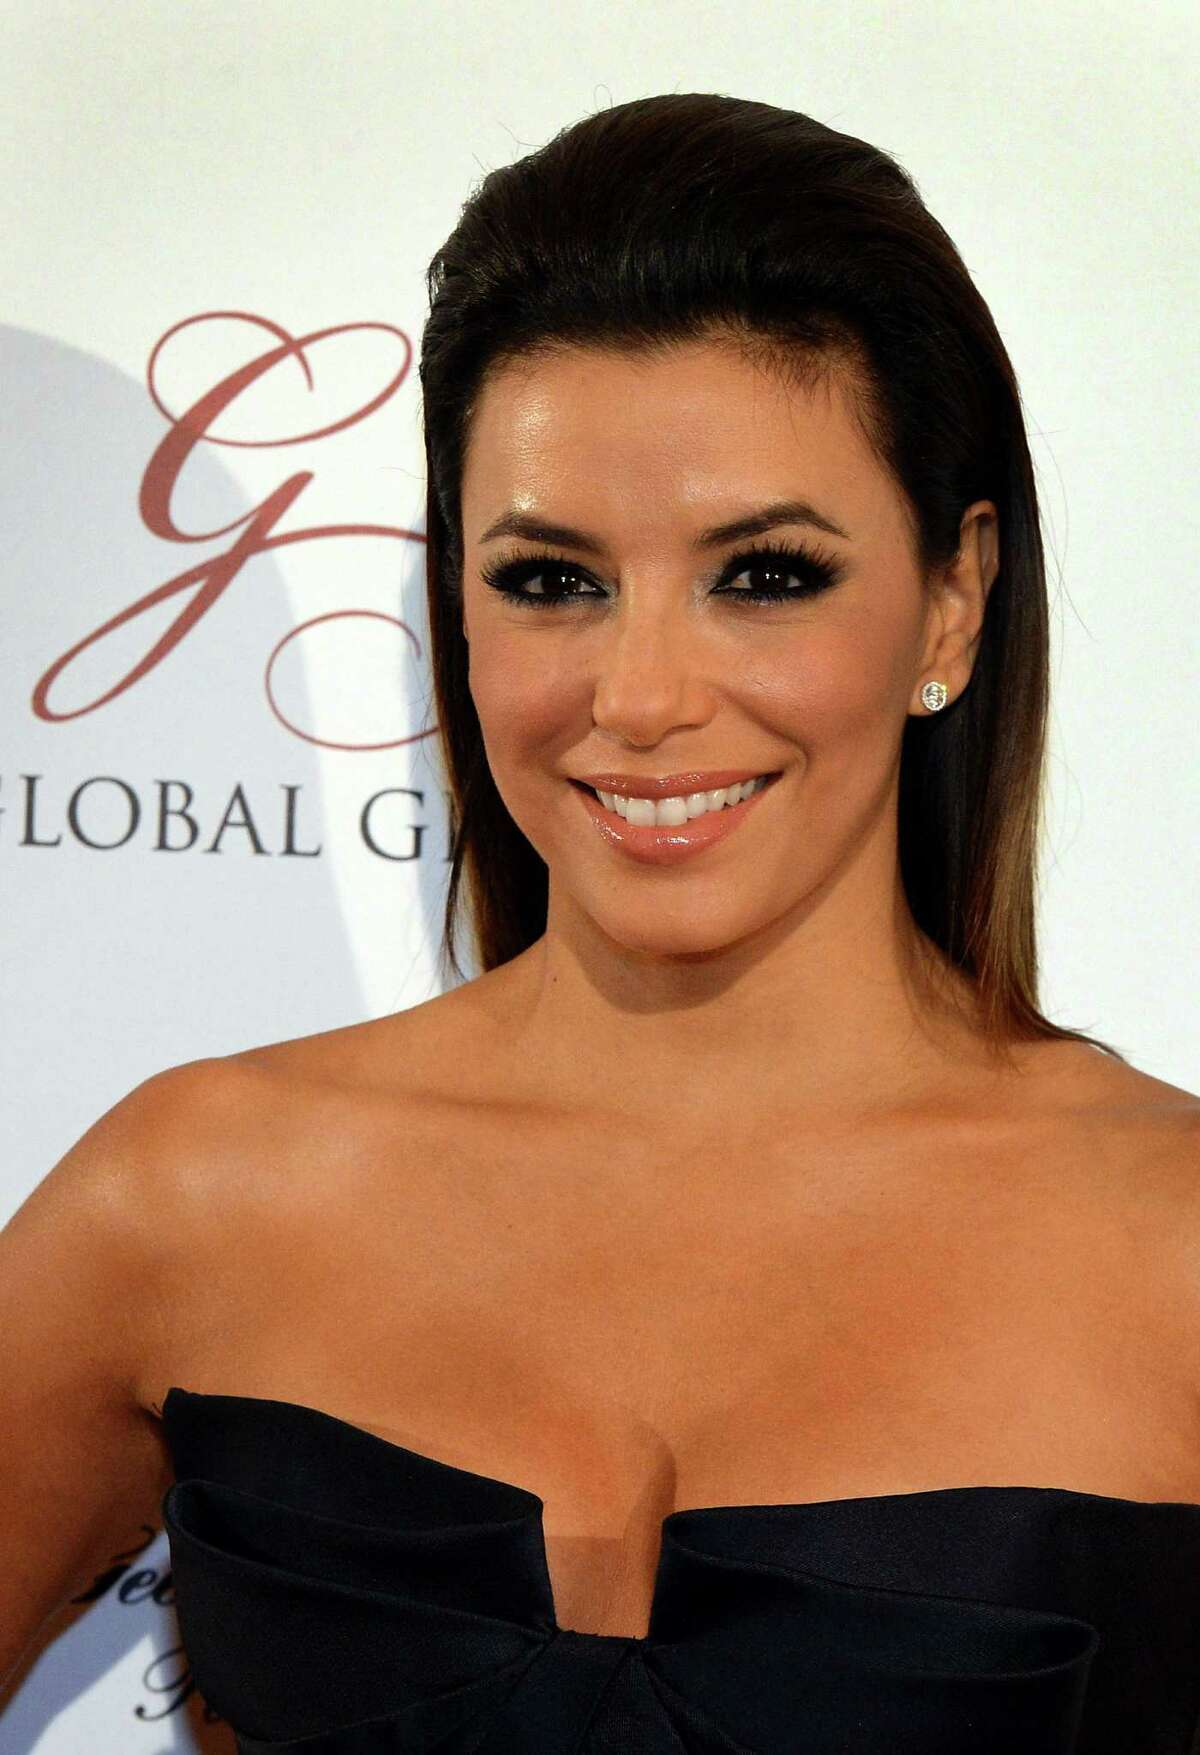 US actress Eva Longoria poses as she arrives to attend